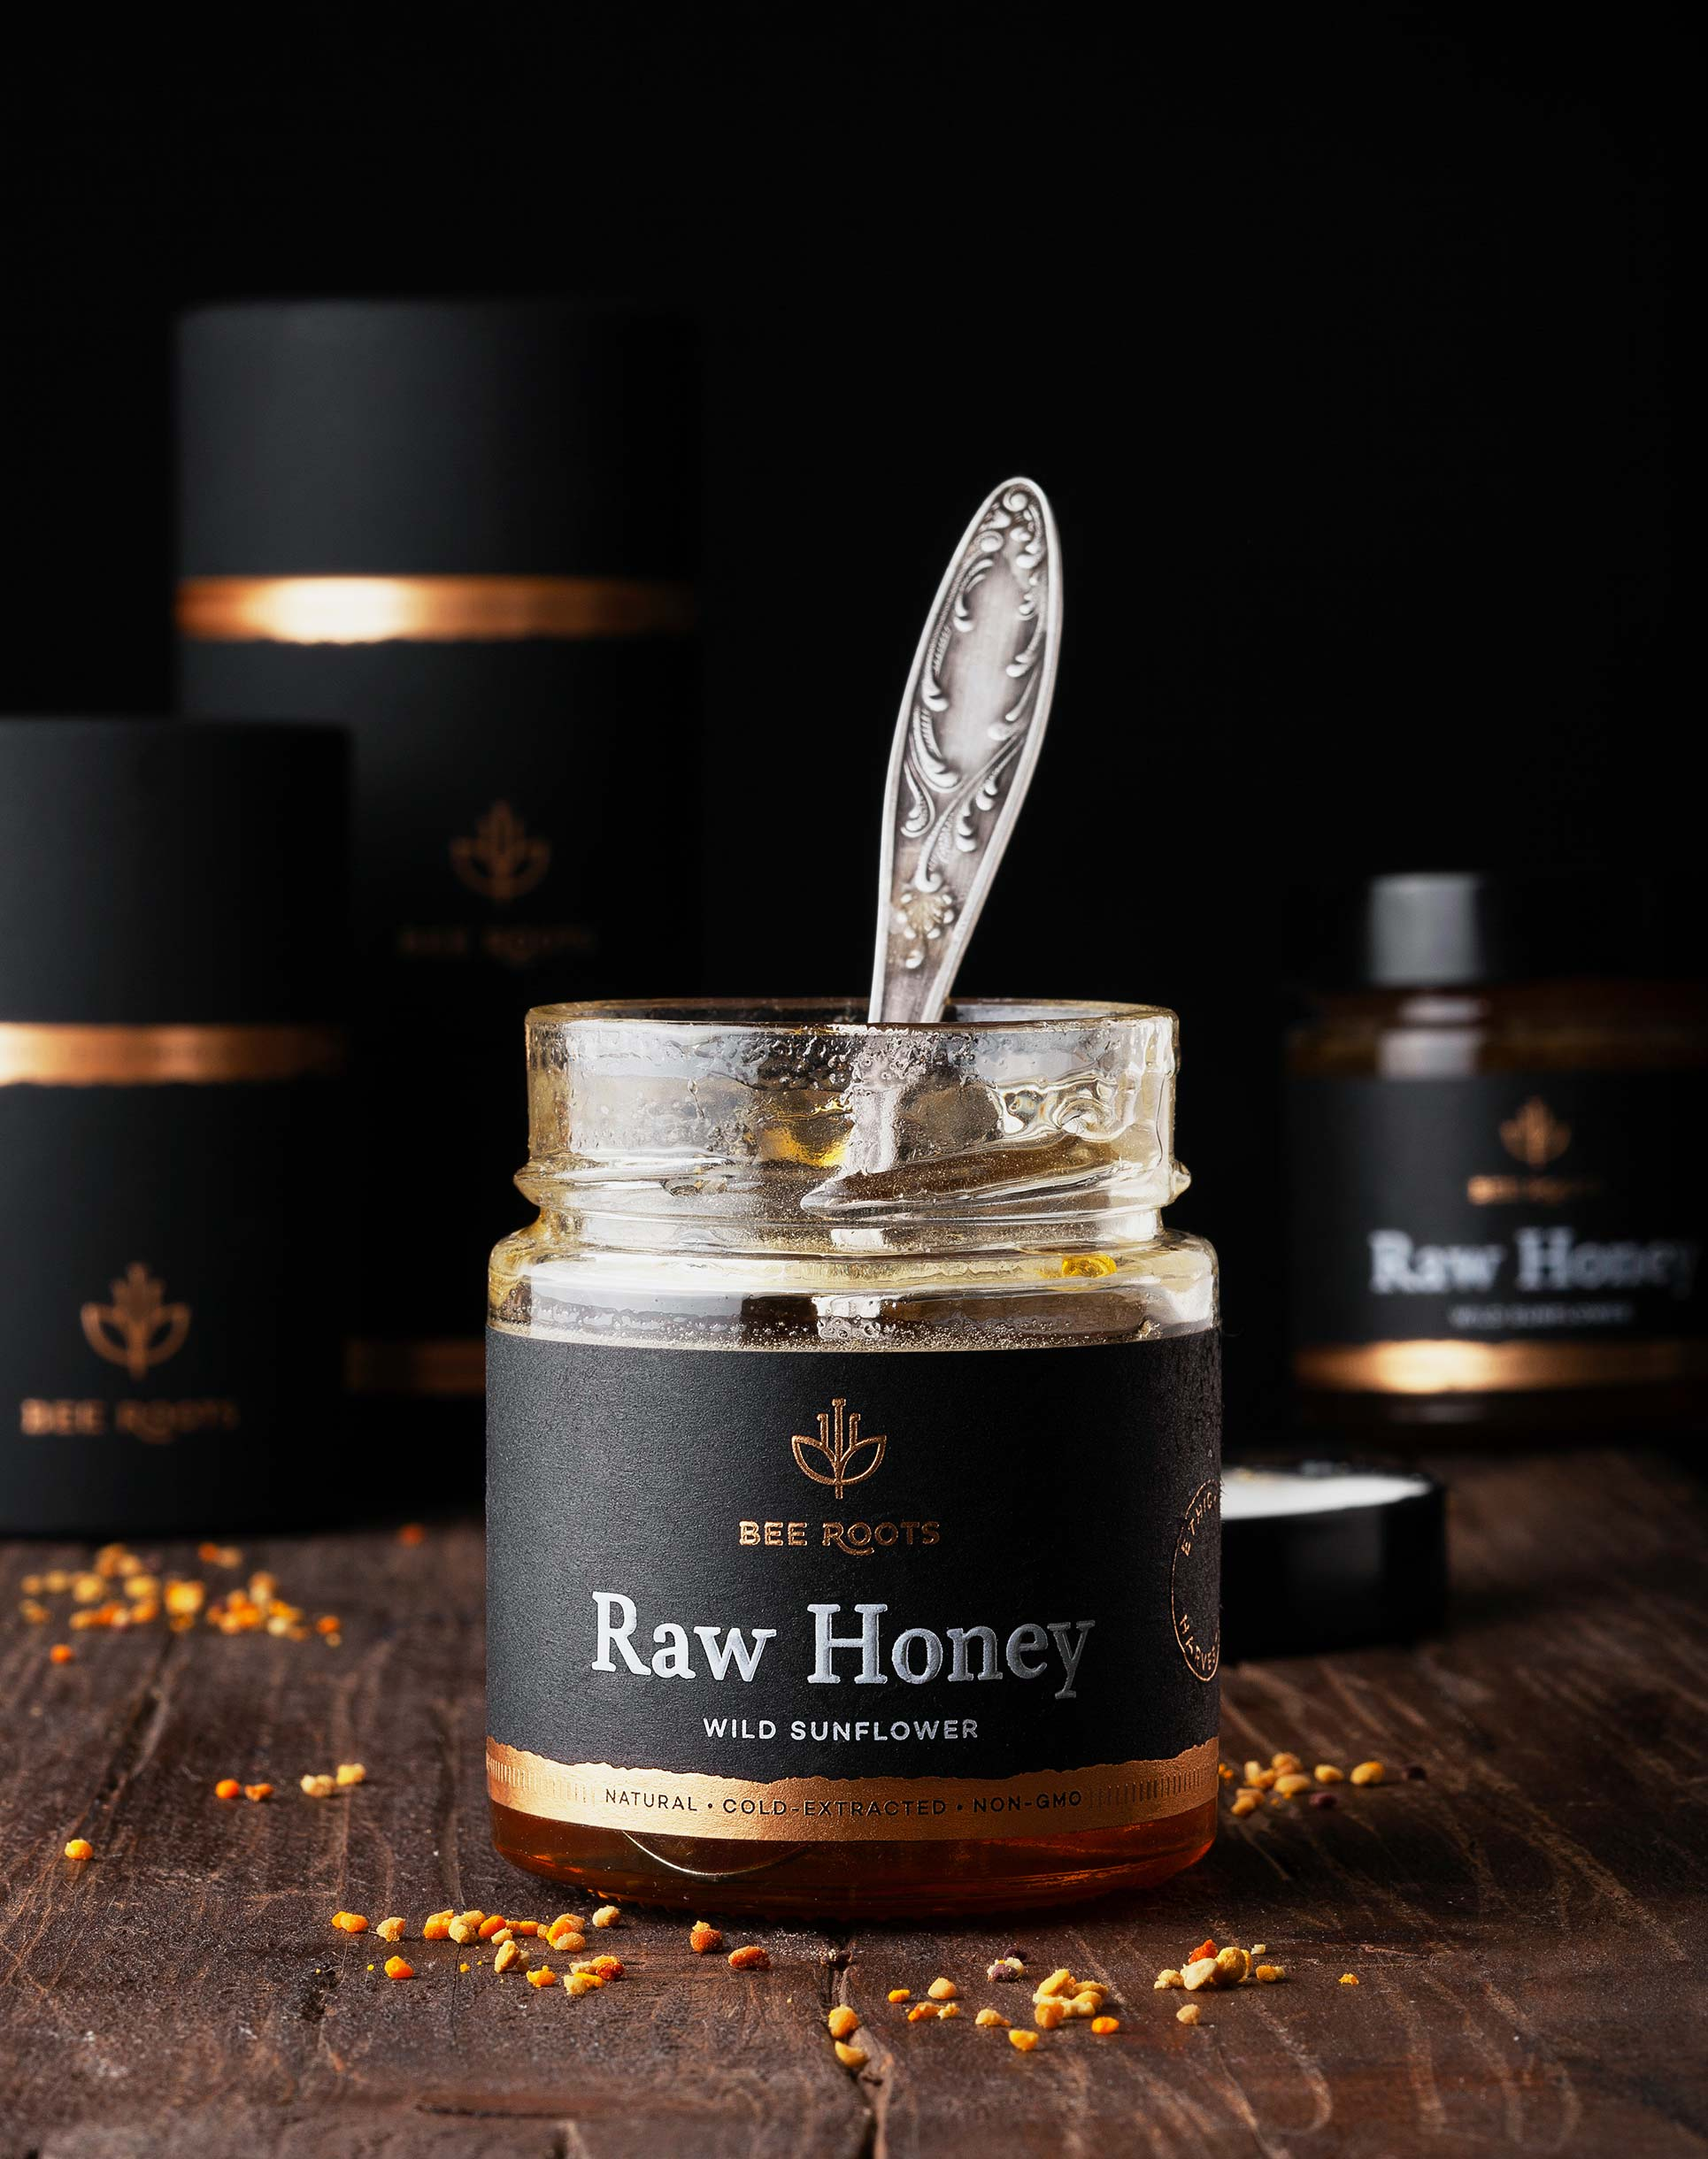 Front view of wild sunflower honey with spoon